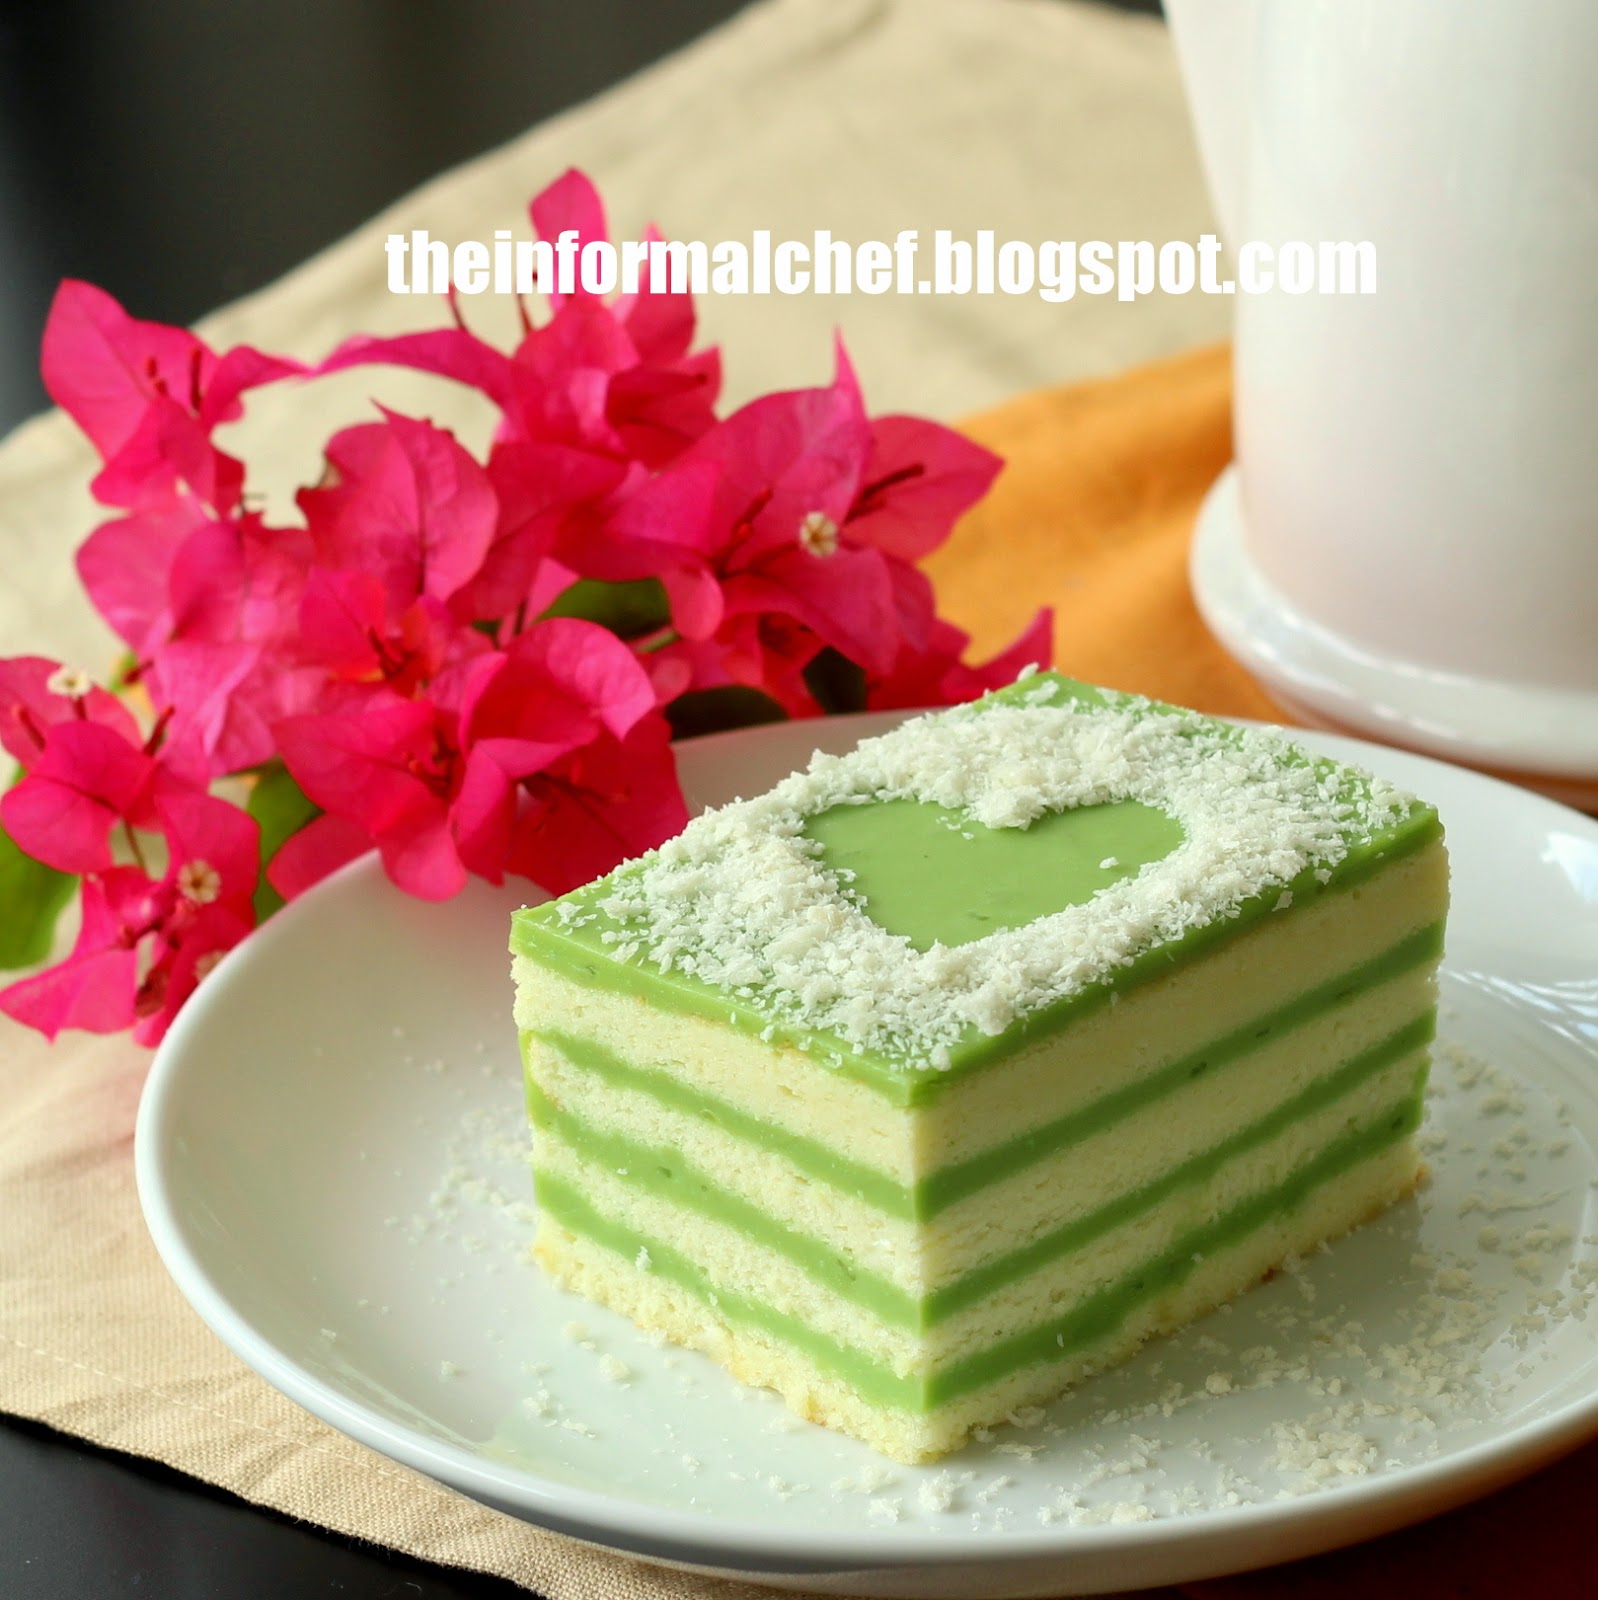 The Informal Chef: Pandan Layer Cake 香兰层蛋糕